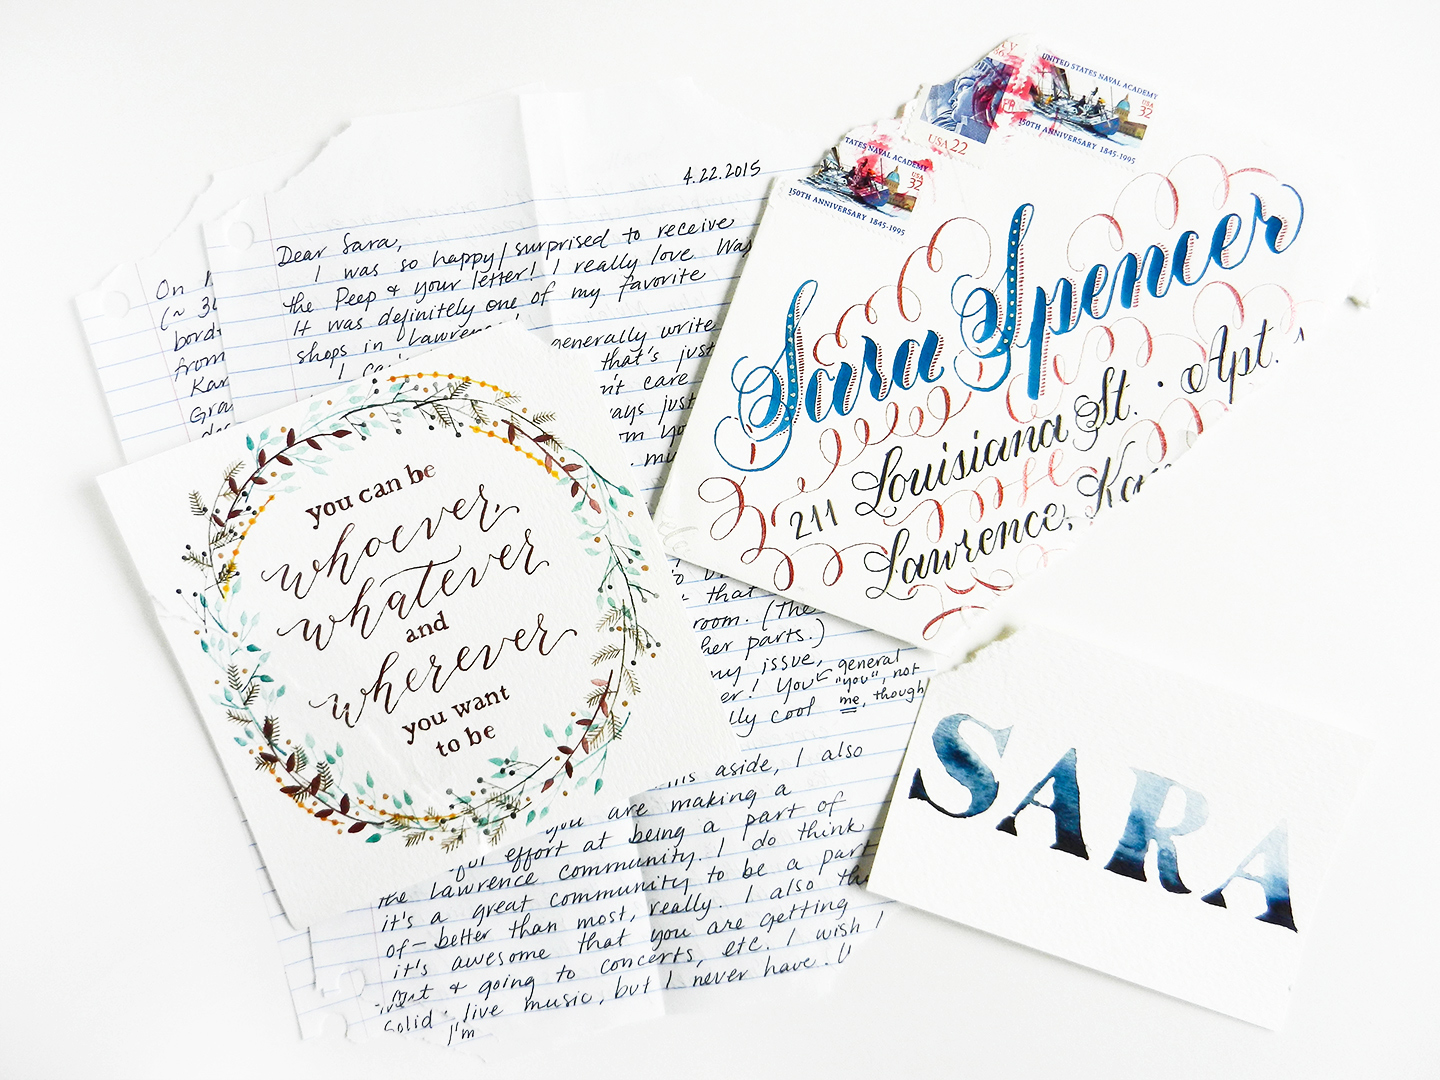 A Snail Mail Disaster | The Postman's Knock